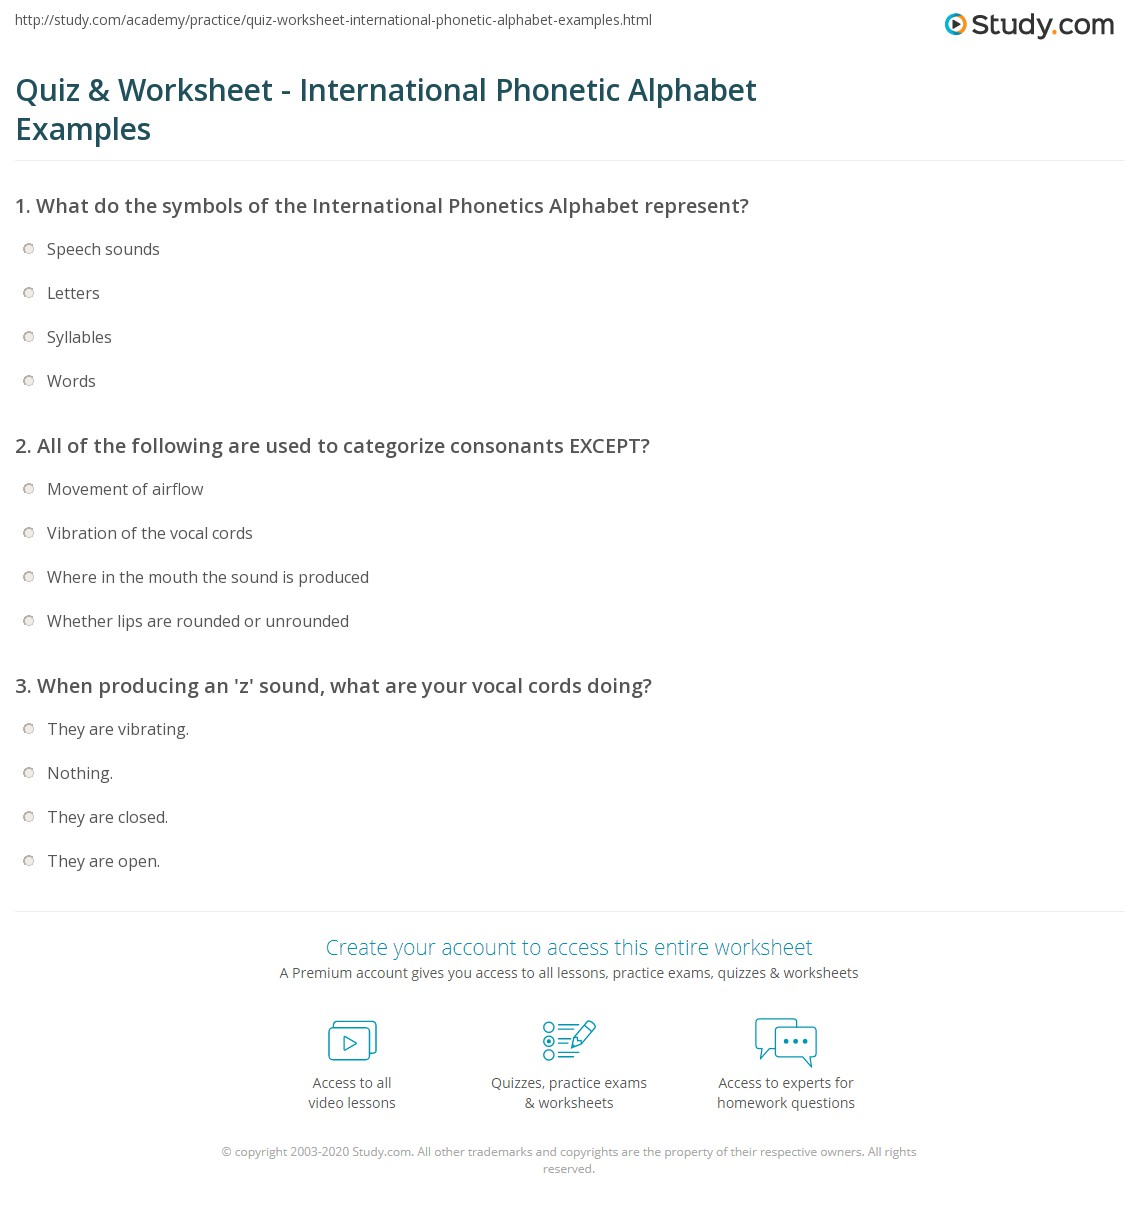 Quiz worksheet international phonetic alphabet examples print international phonetic alphabet sounds symbols worksheet biocorpaavc Choice Image